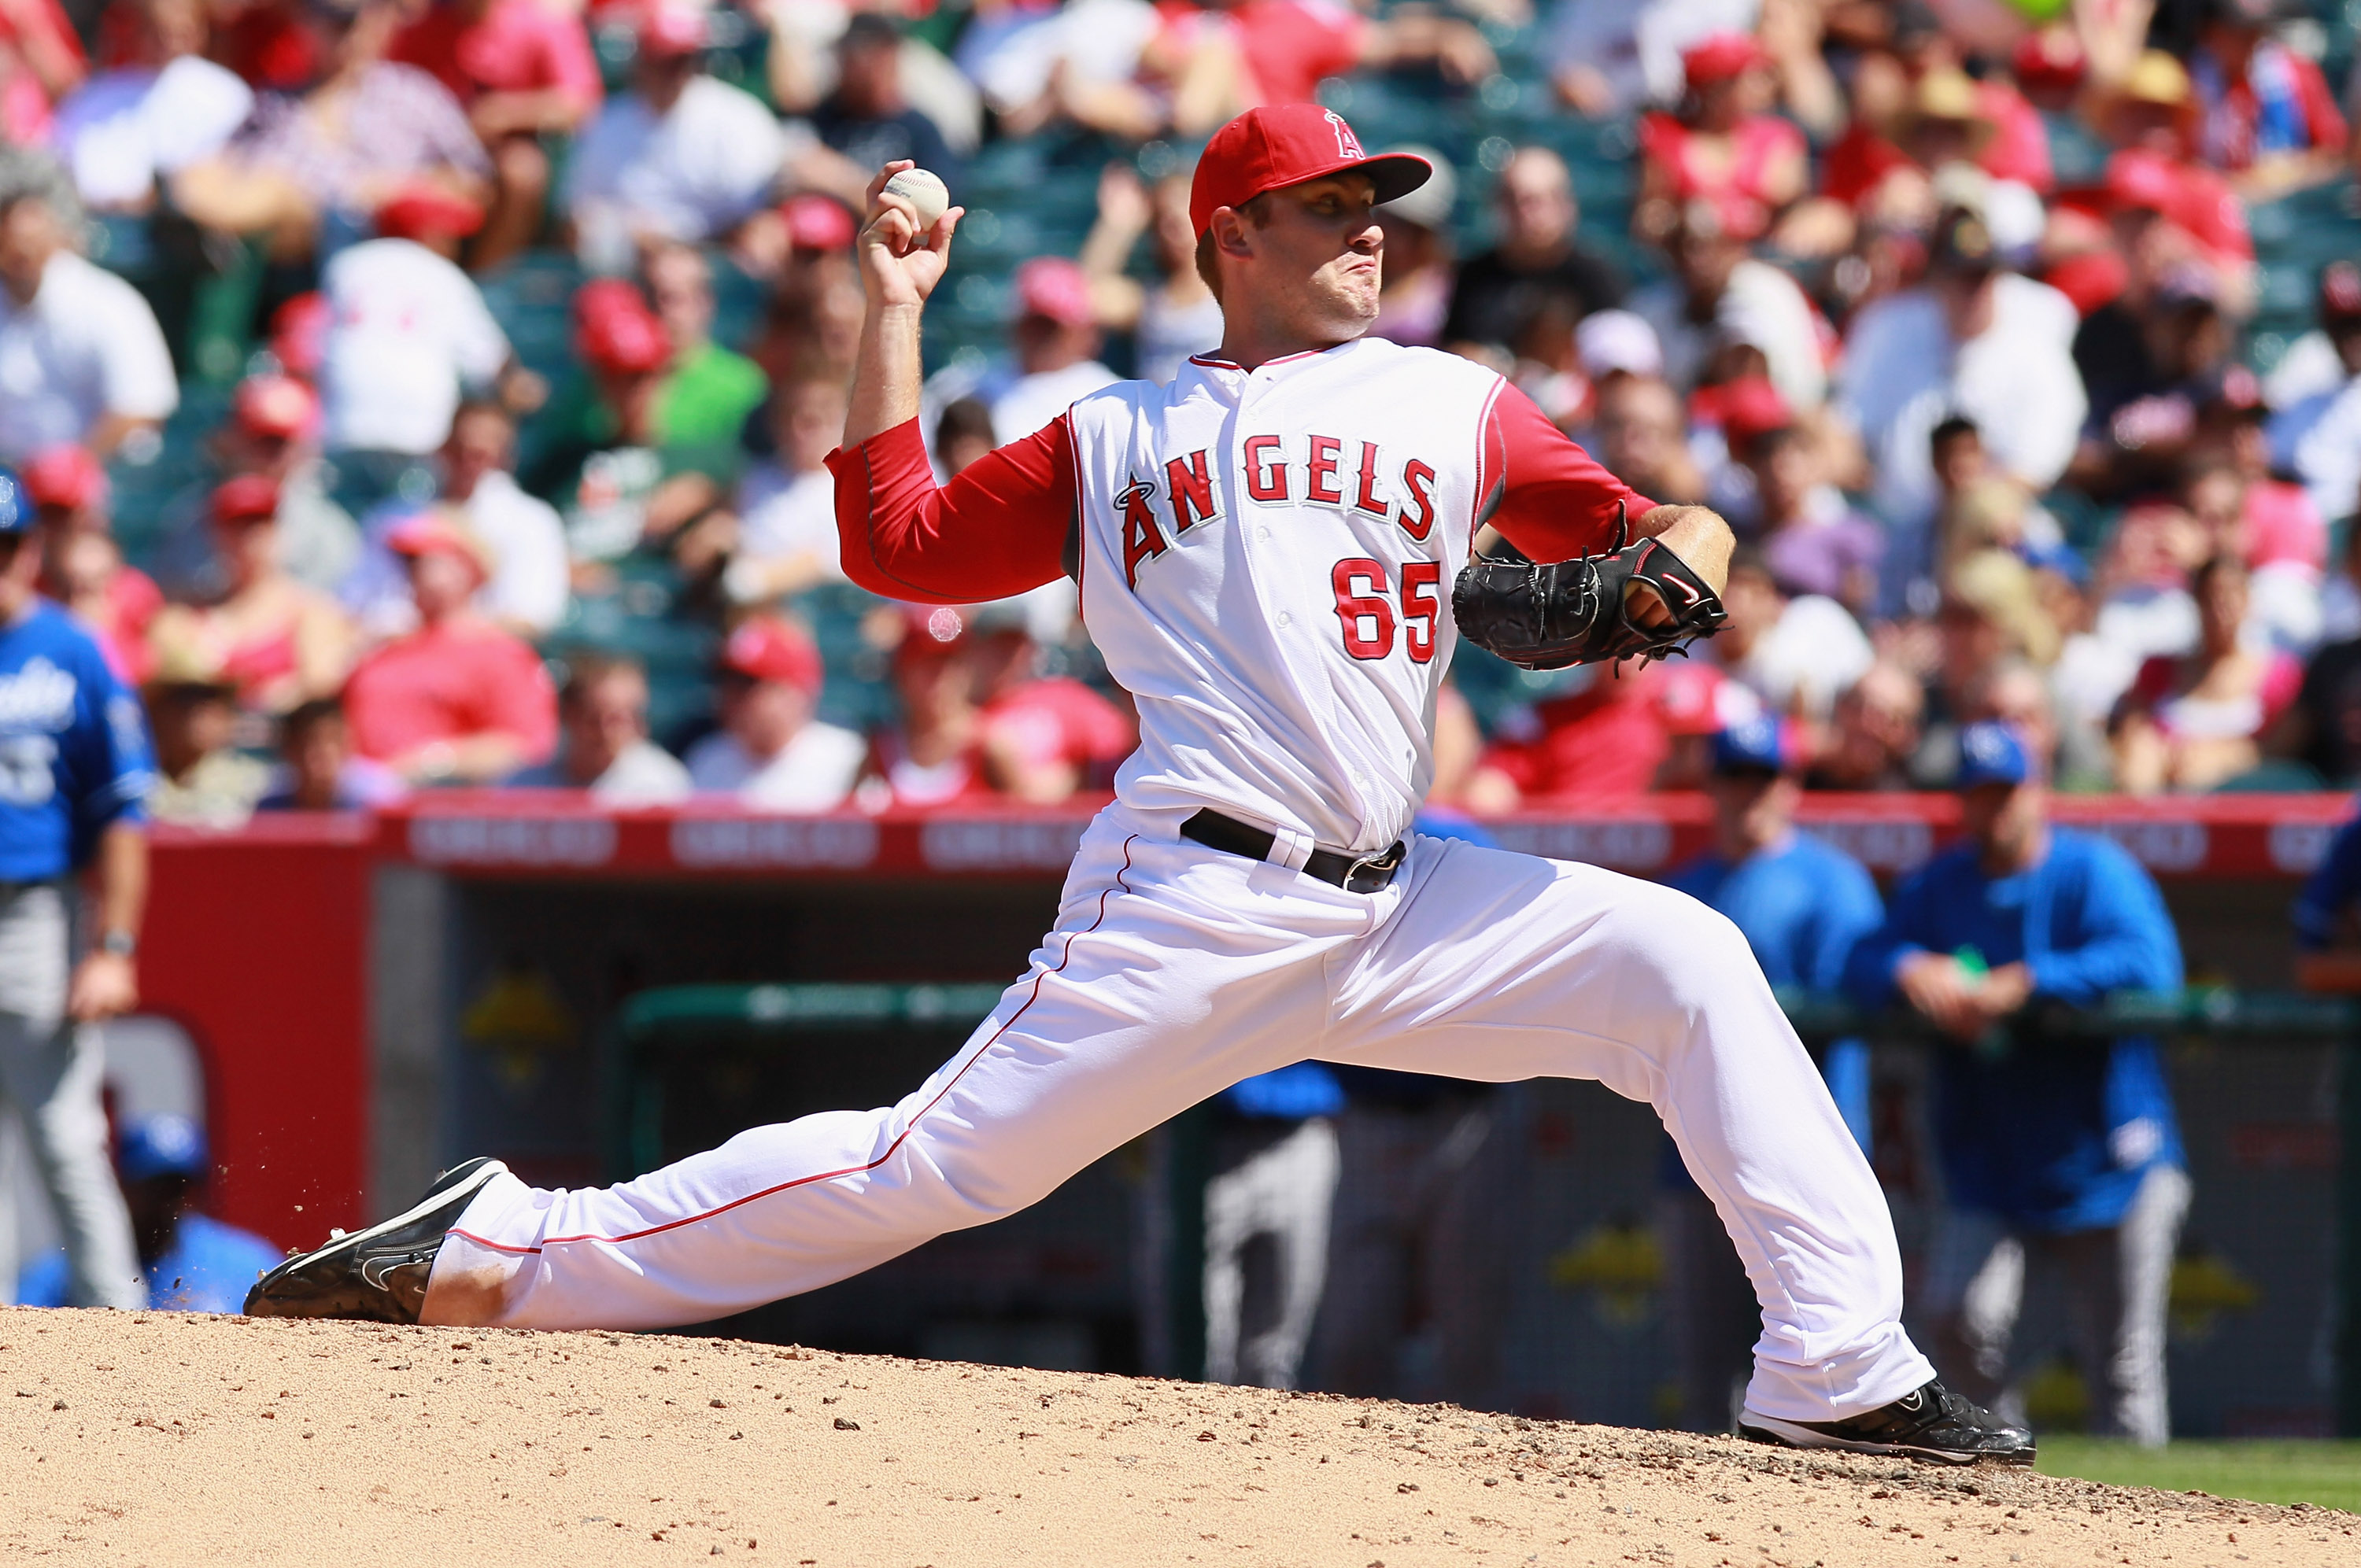 ANAHEIM, CA - AUGUST 11:  Kevin Jepsen #65 of the Los Angeles Angels of Anaheim pitches against the Kansas City Royals at Angel Stadium on August 11, 2010 in Anaheim, California.  (Photo by Jeff Gross/Getty Images)